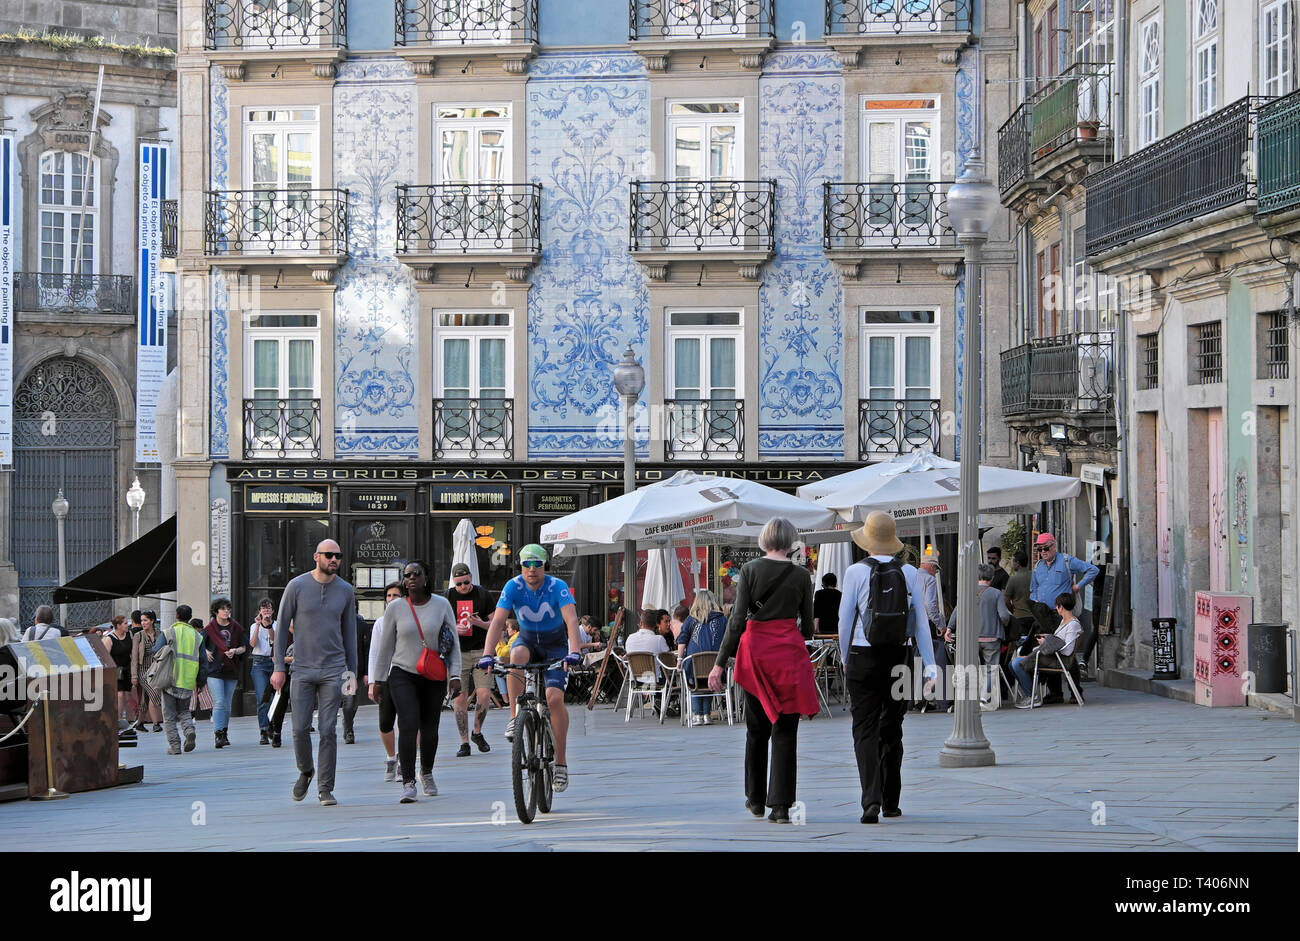 Cyclist riding bike along Rua das Flores past building with blue azulejos tiles, restaurant and tourists in street Porto Portugal Europe  KATHY DEWITT - Stock Image